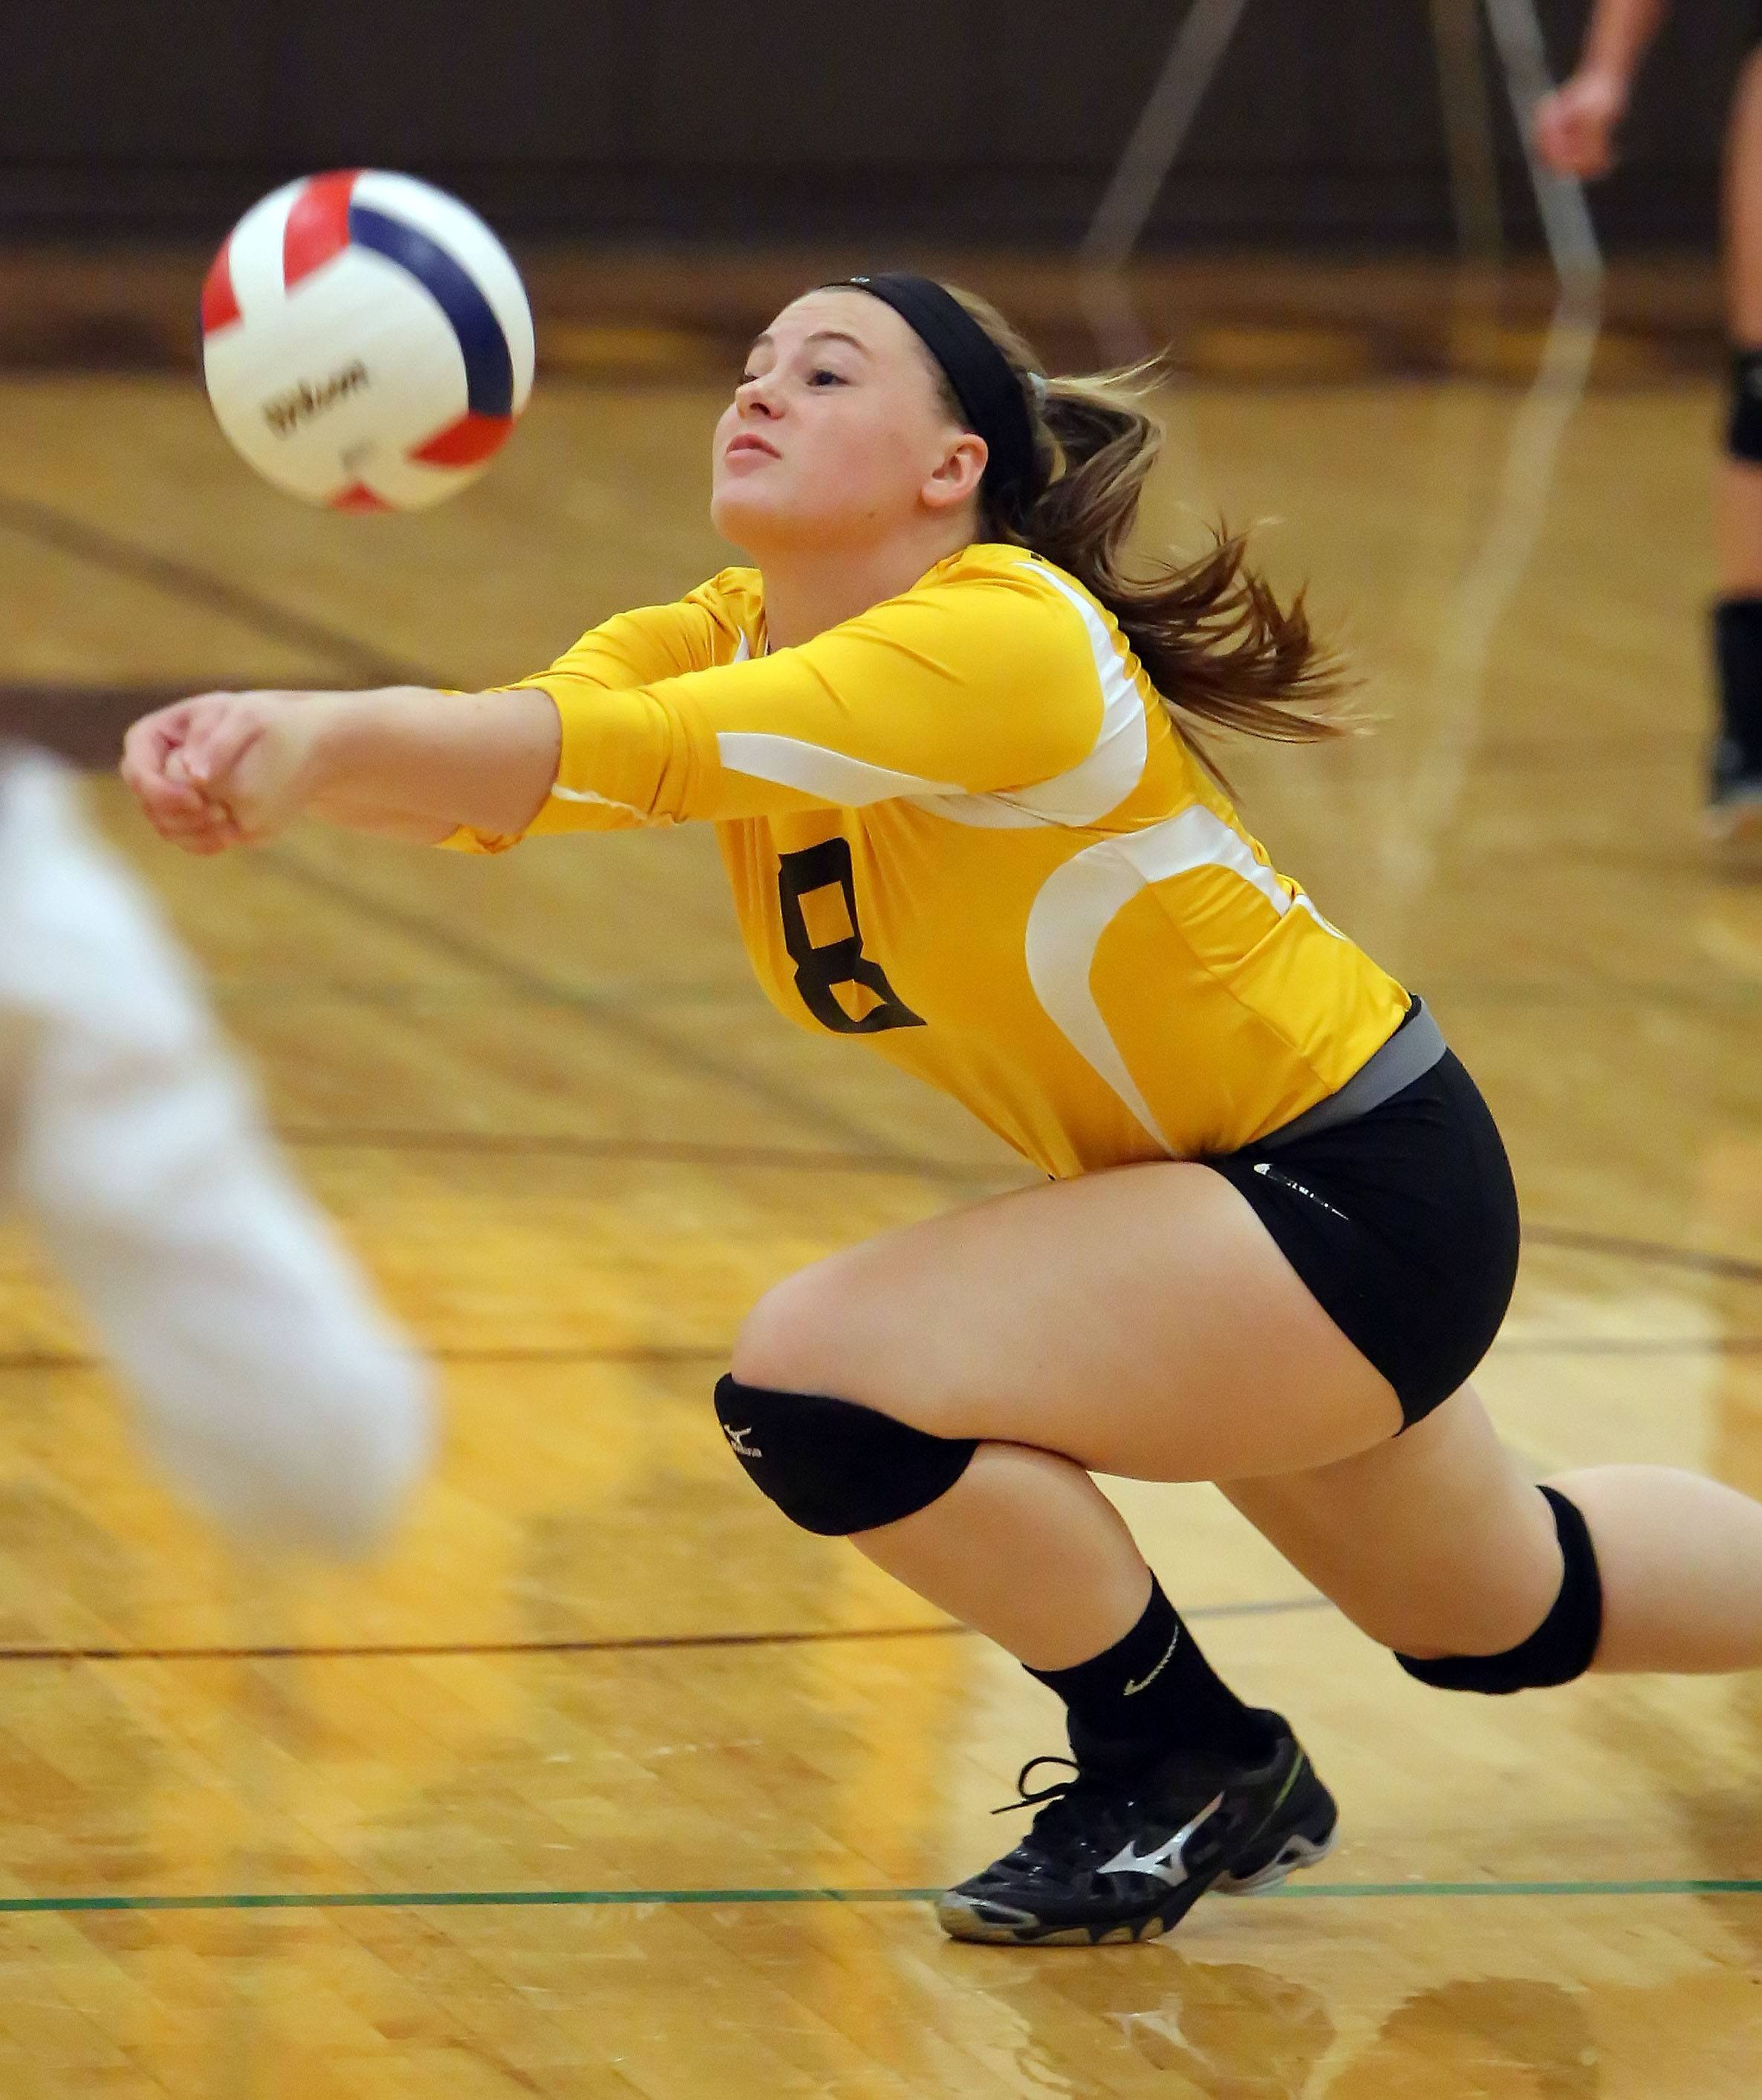 Carmel's Mamie Kenar dives for a ball against Lake Zurich on Tuesday in Mundelein.